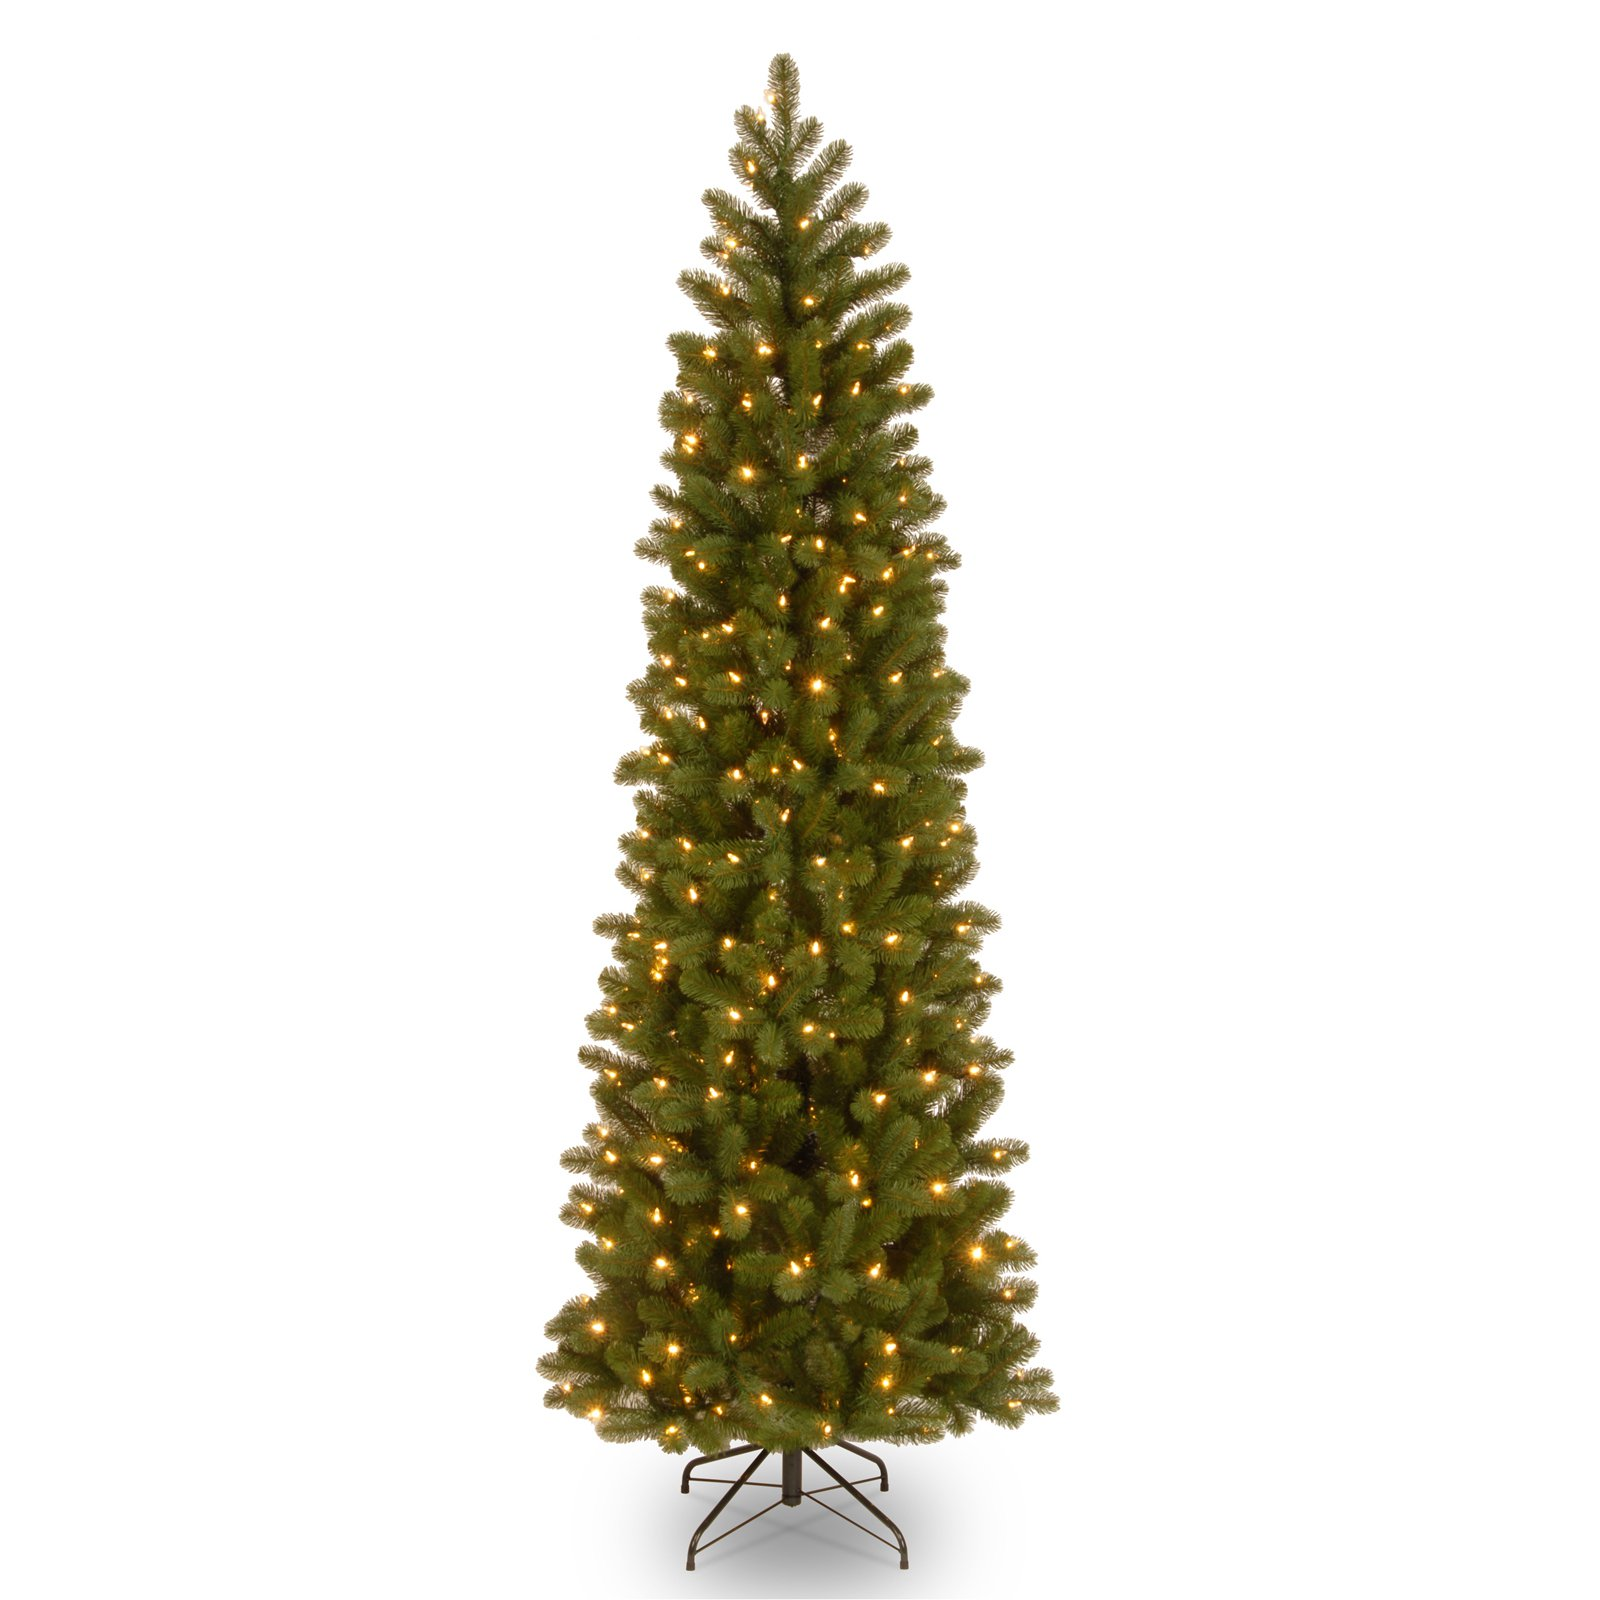 6.5 ft. Downswept Douglas Pencil Slim Fir Tree with Dual Color LED Lights